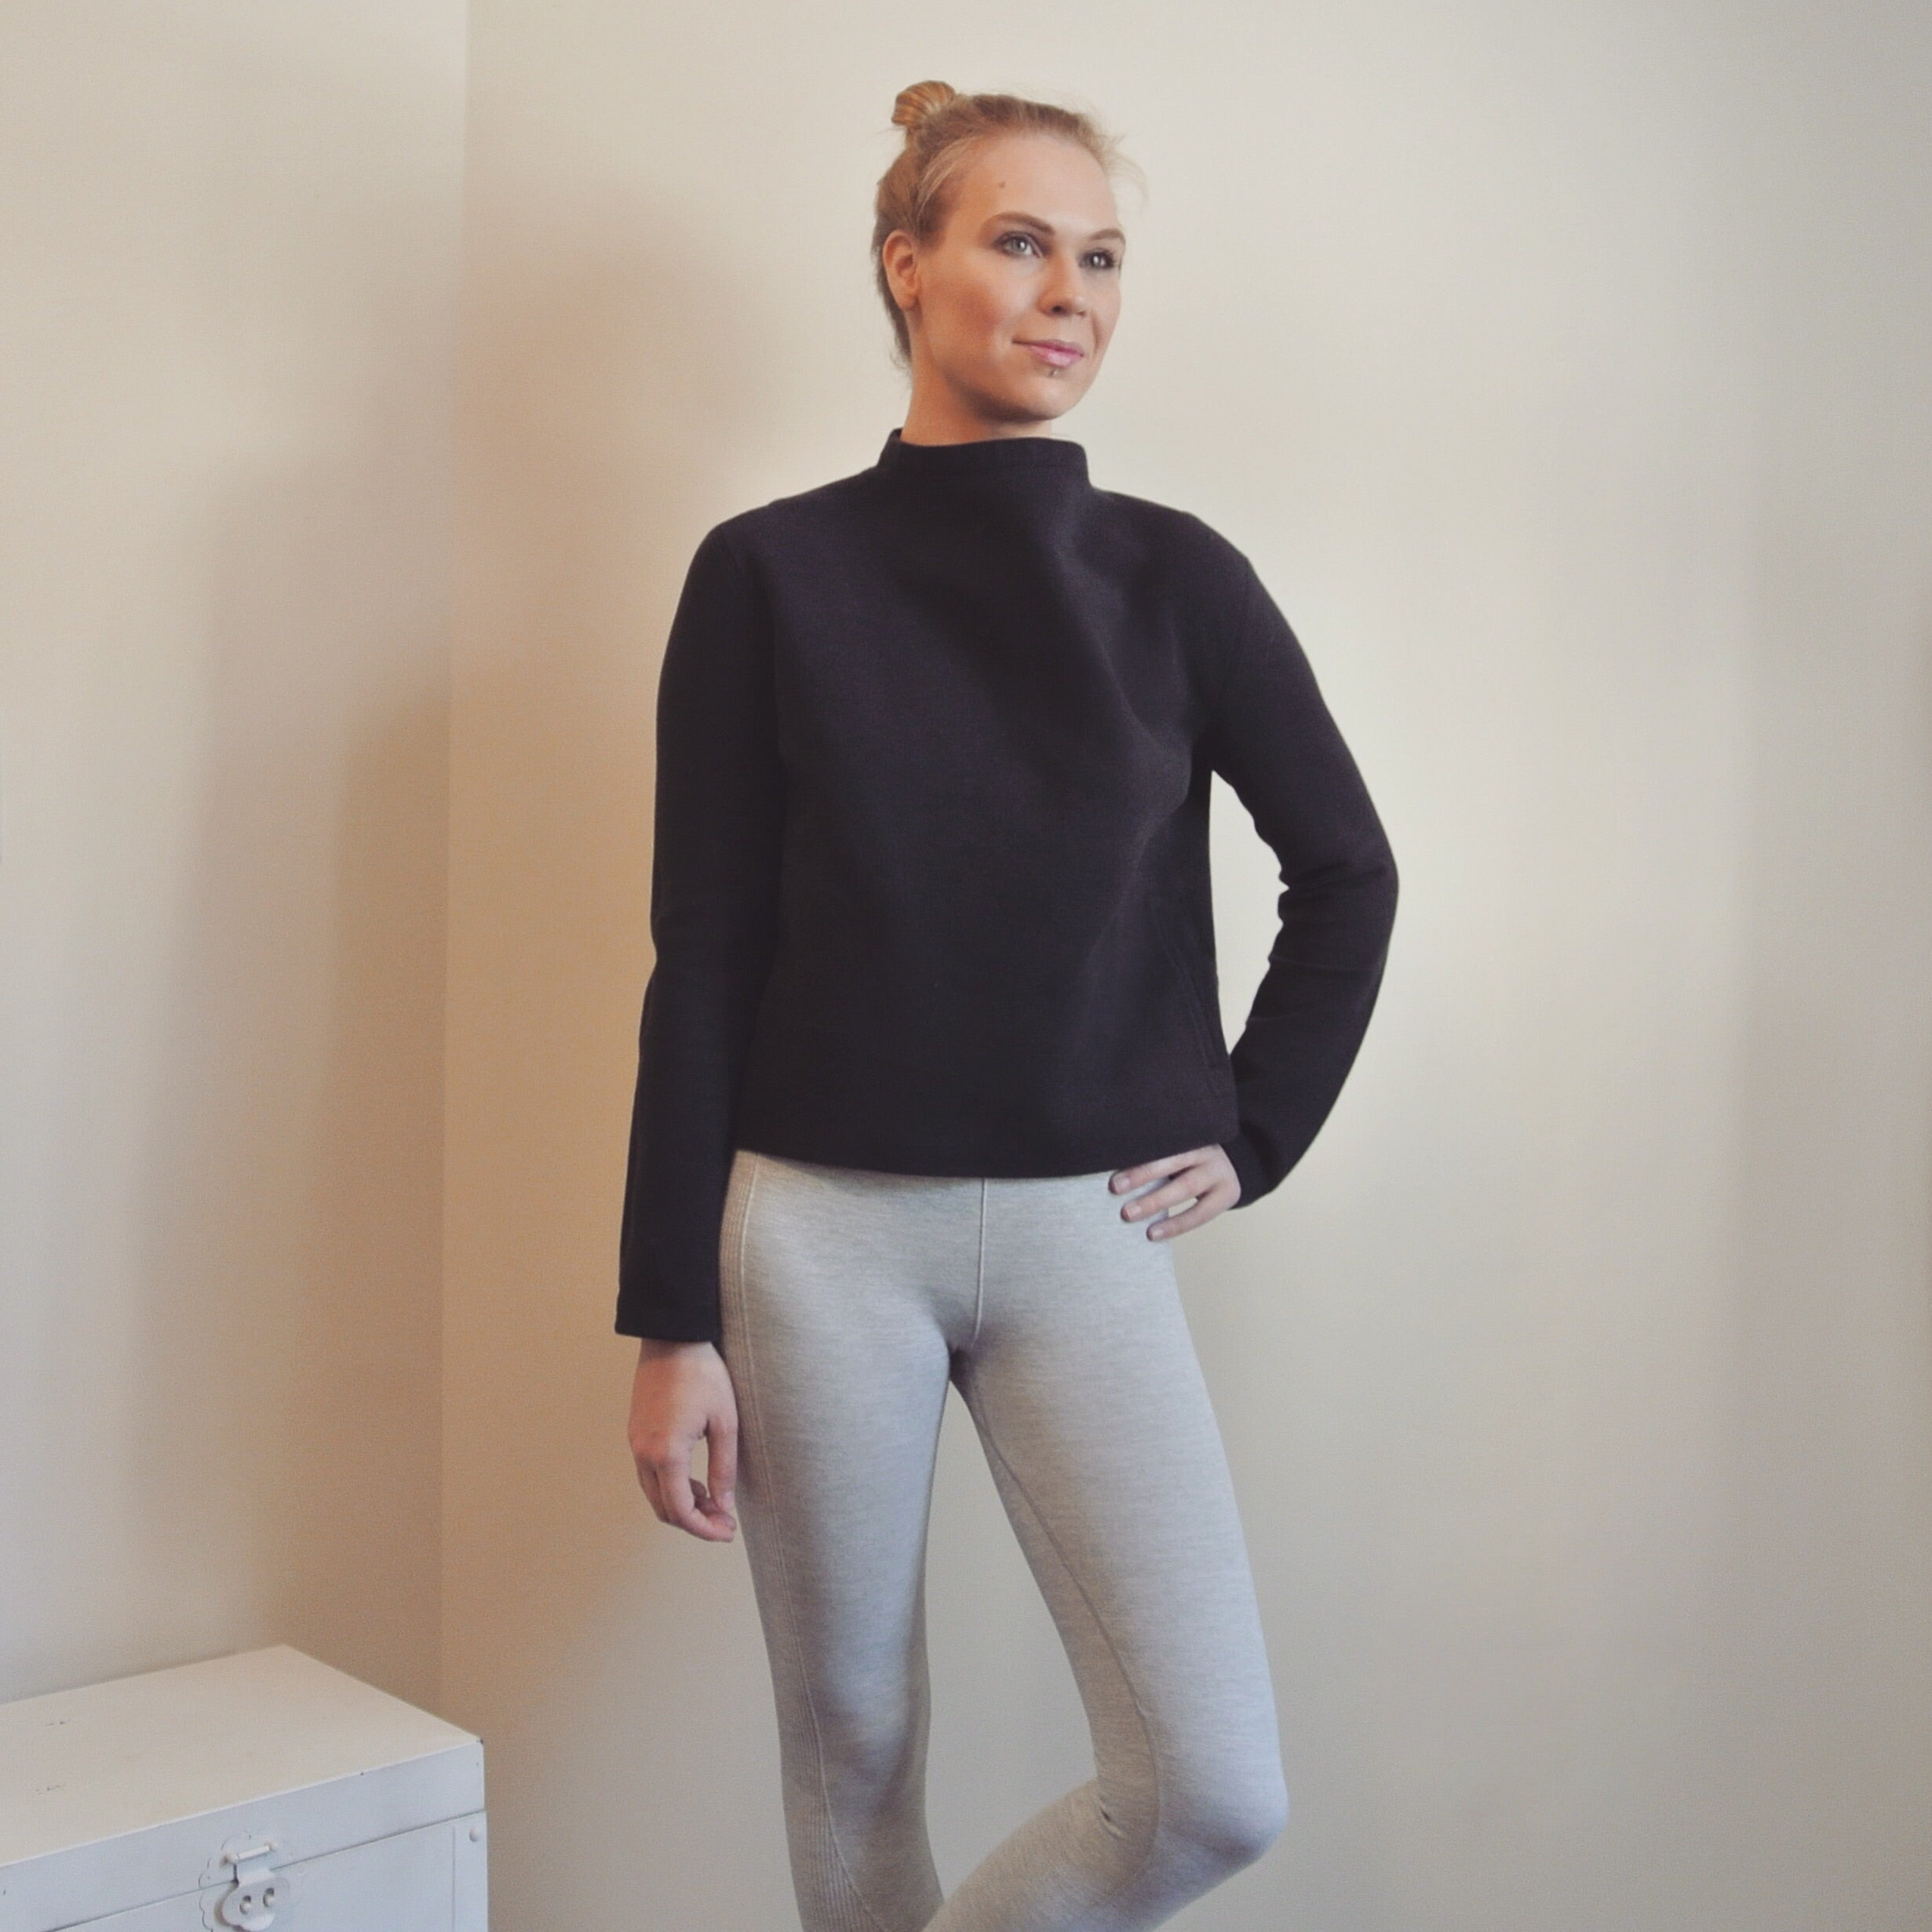 Lululemon Mock Turtleneck Sweater